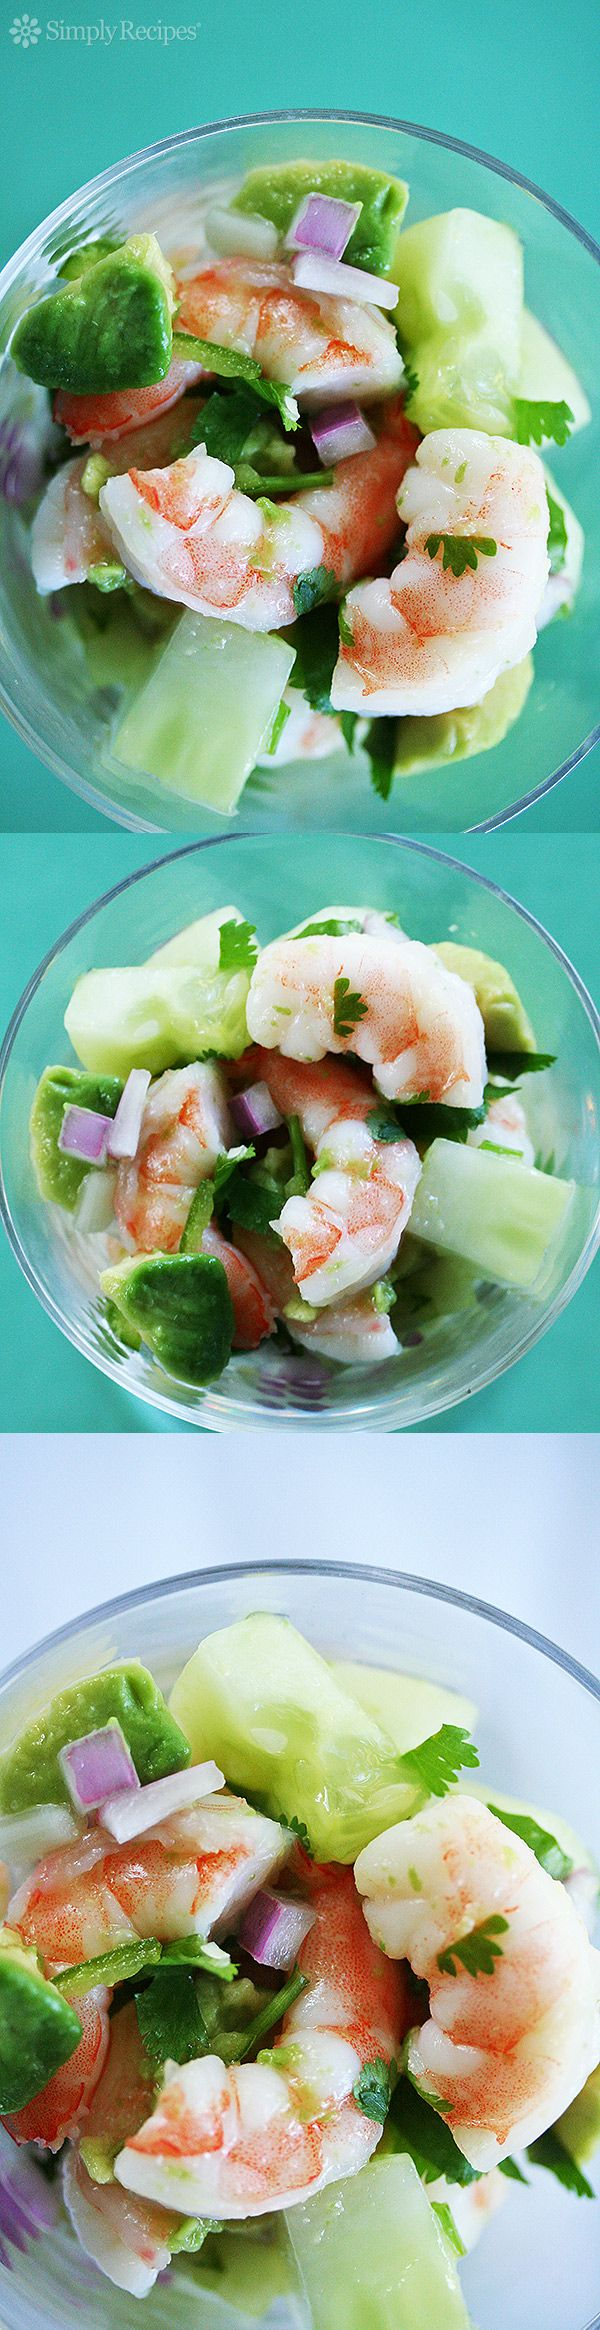 Shrimp Ceviche ~ Cool and tasty shrimp ceviche recipe, shrimp served with chopped red onion, chile, cilantro, cucumber, avocado with lemon and lime juices. ~ SimplyRecipes.com